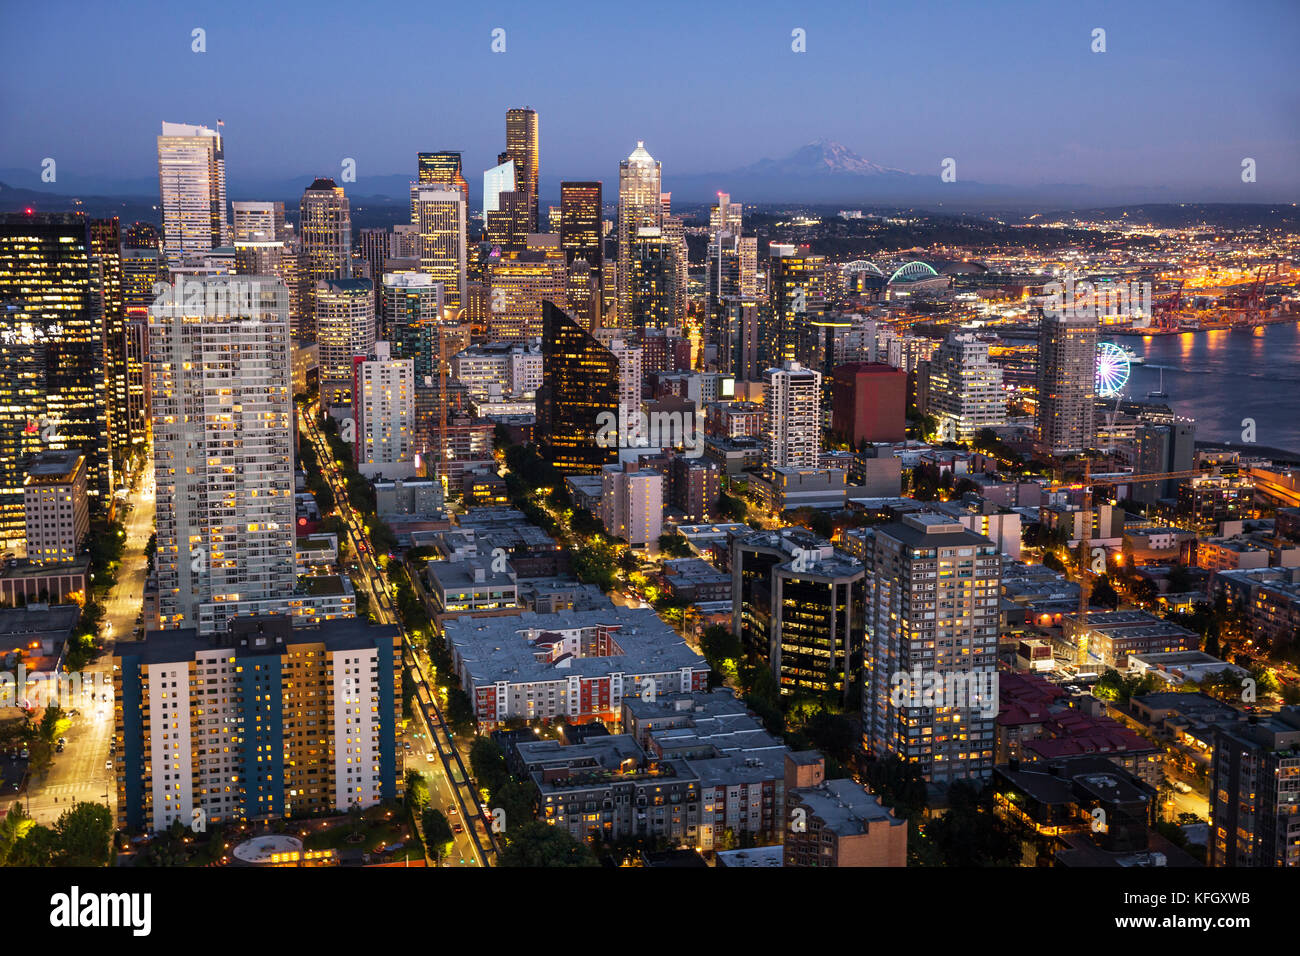 WA14153-00...WASHINGTON - View of Seattle and Mount Rainier from the observation deck of the Space Needle in the - Stock Image